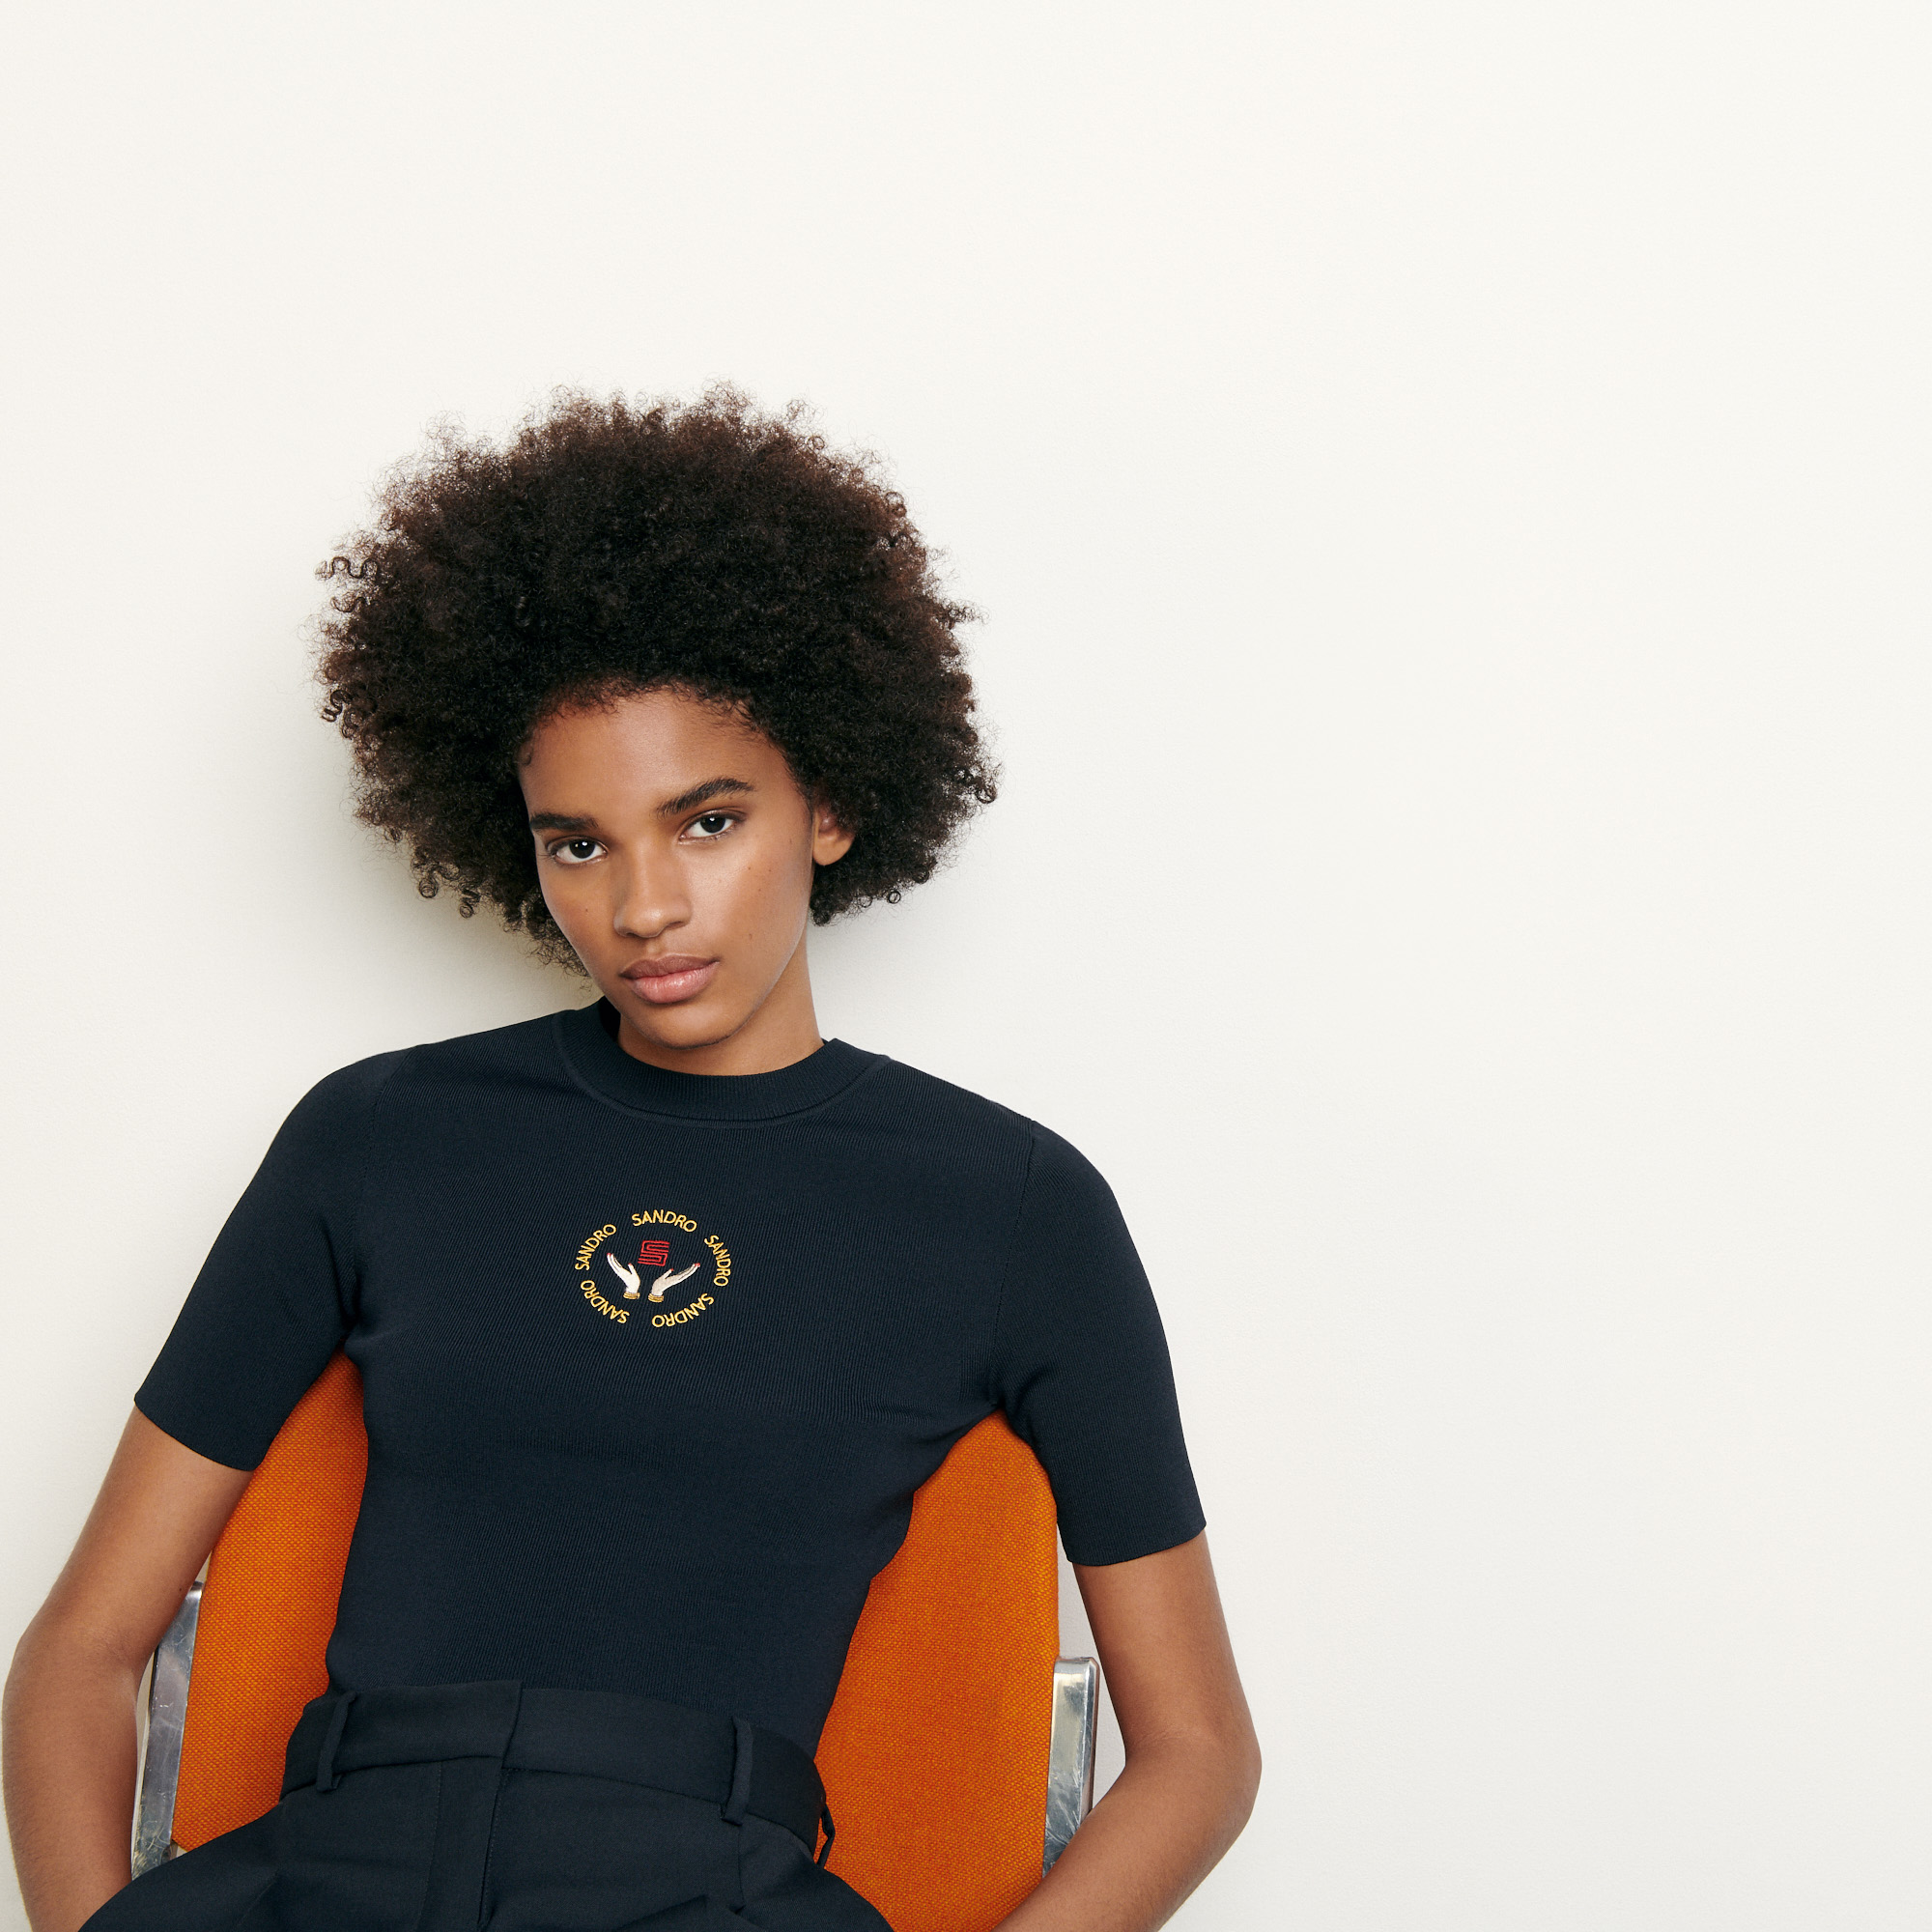 Knit top with embroidery - Navy